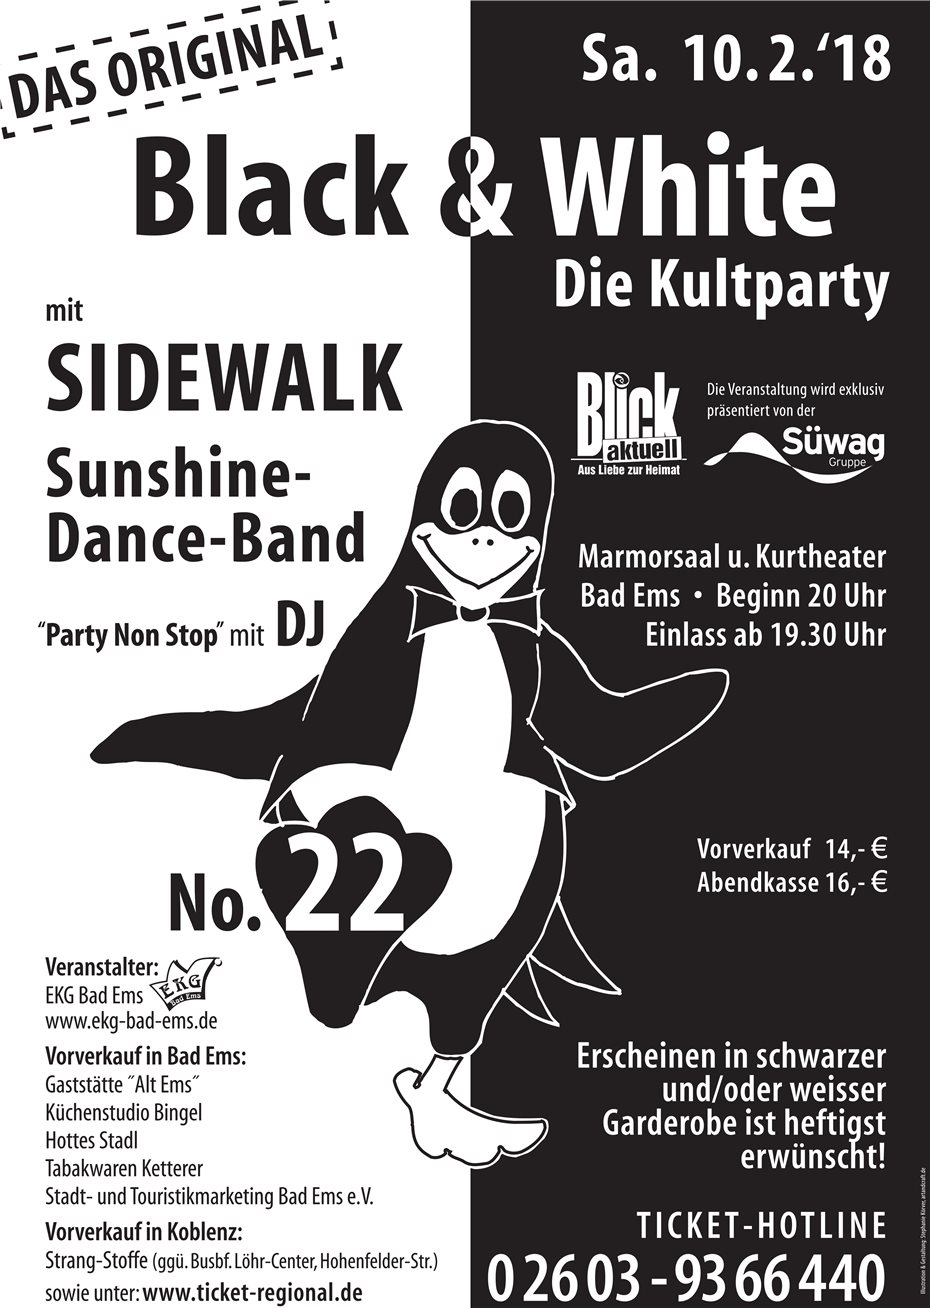 Die Kultparty Black & White am Karnevalssamstag in Bad Ems